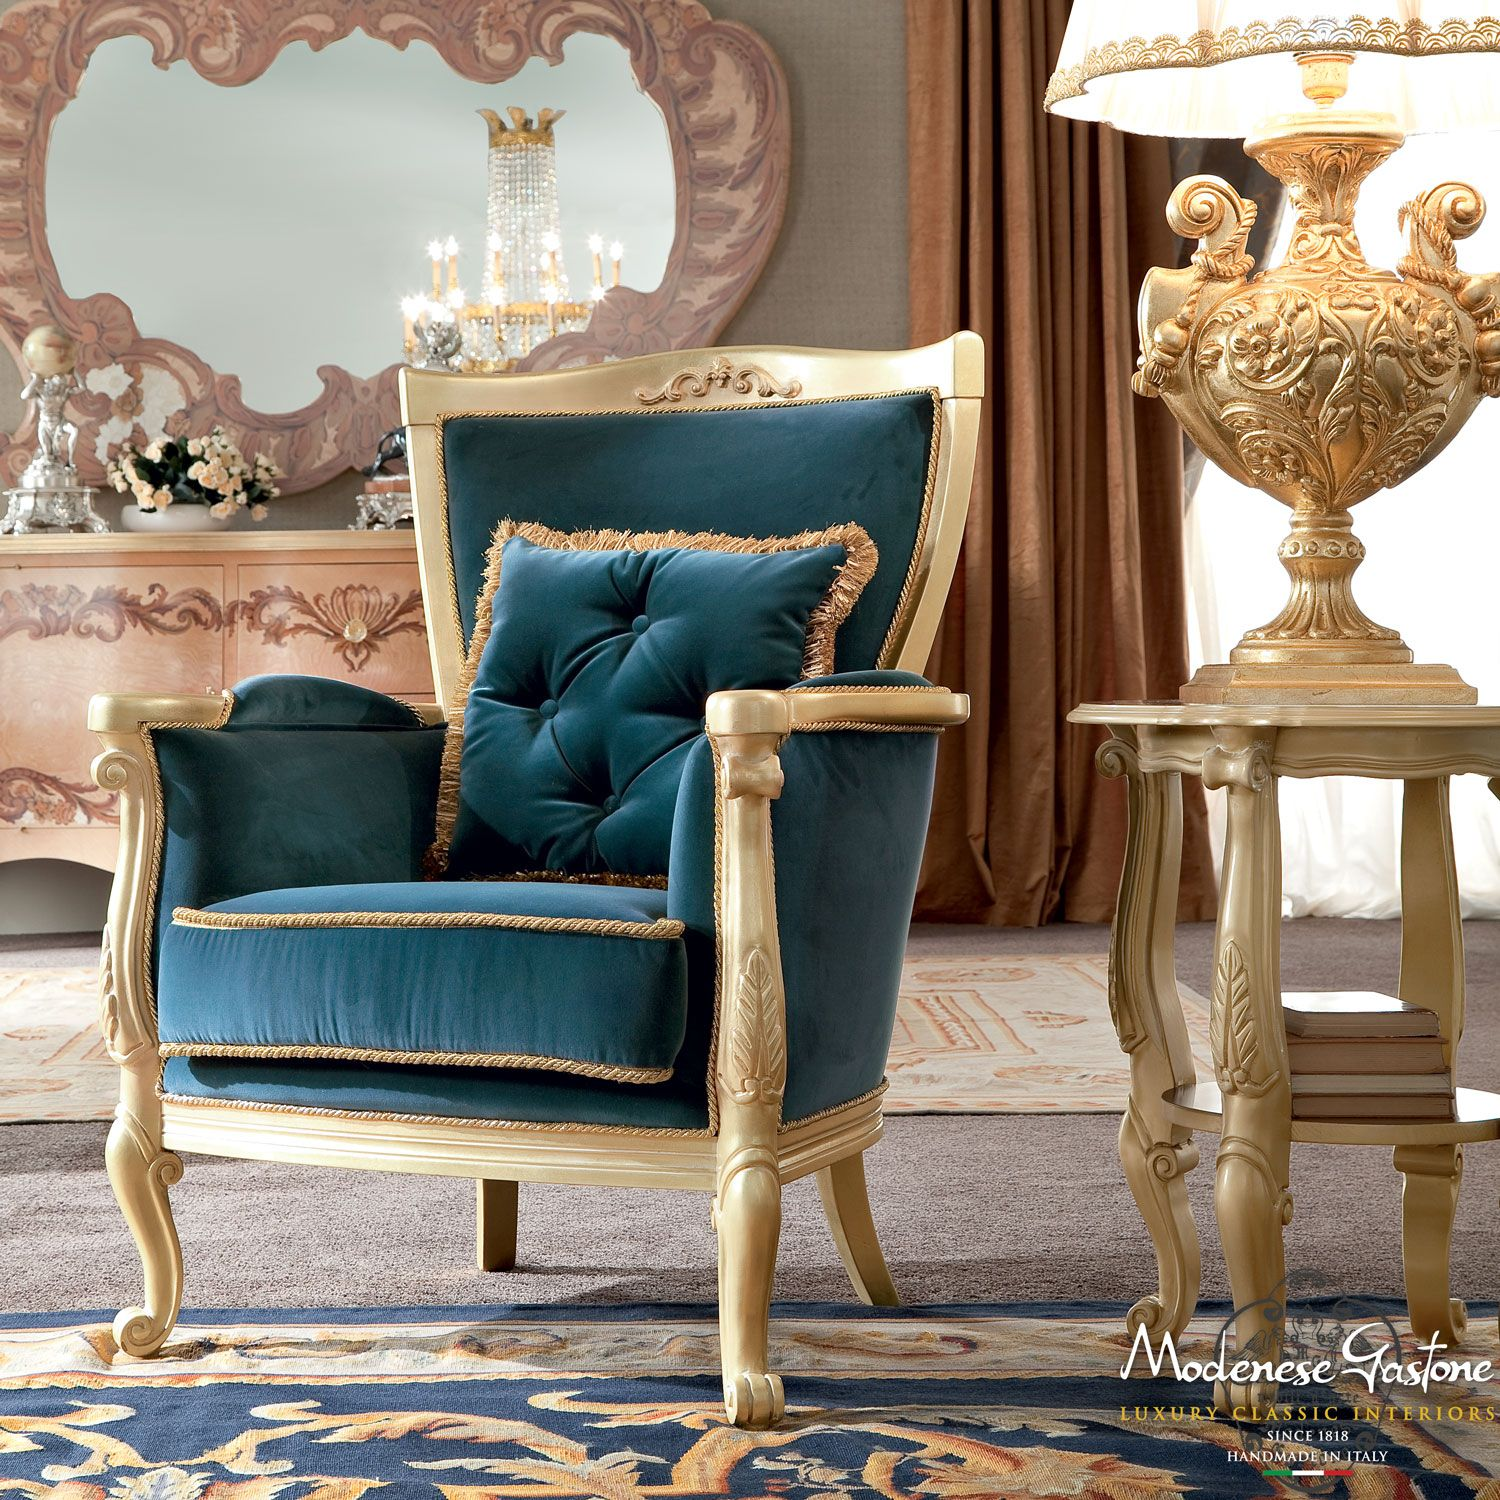 Coming With A Diversity Of Designs Our Furniture Range